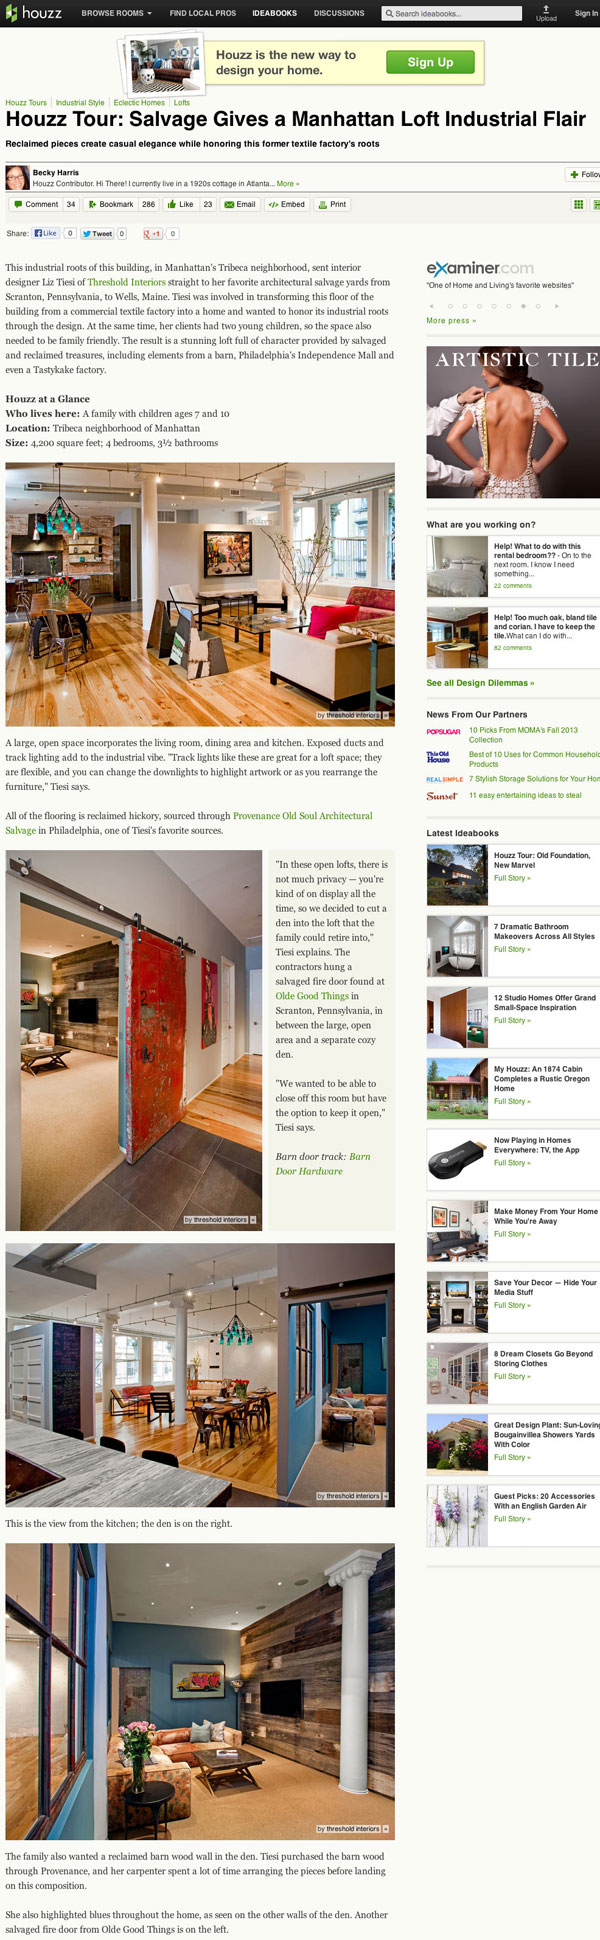 01a-threshold-houzz-2013.jpg